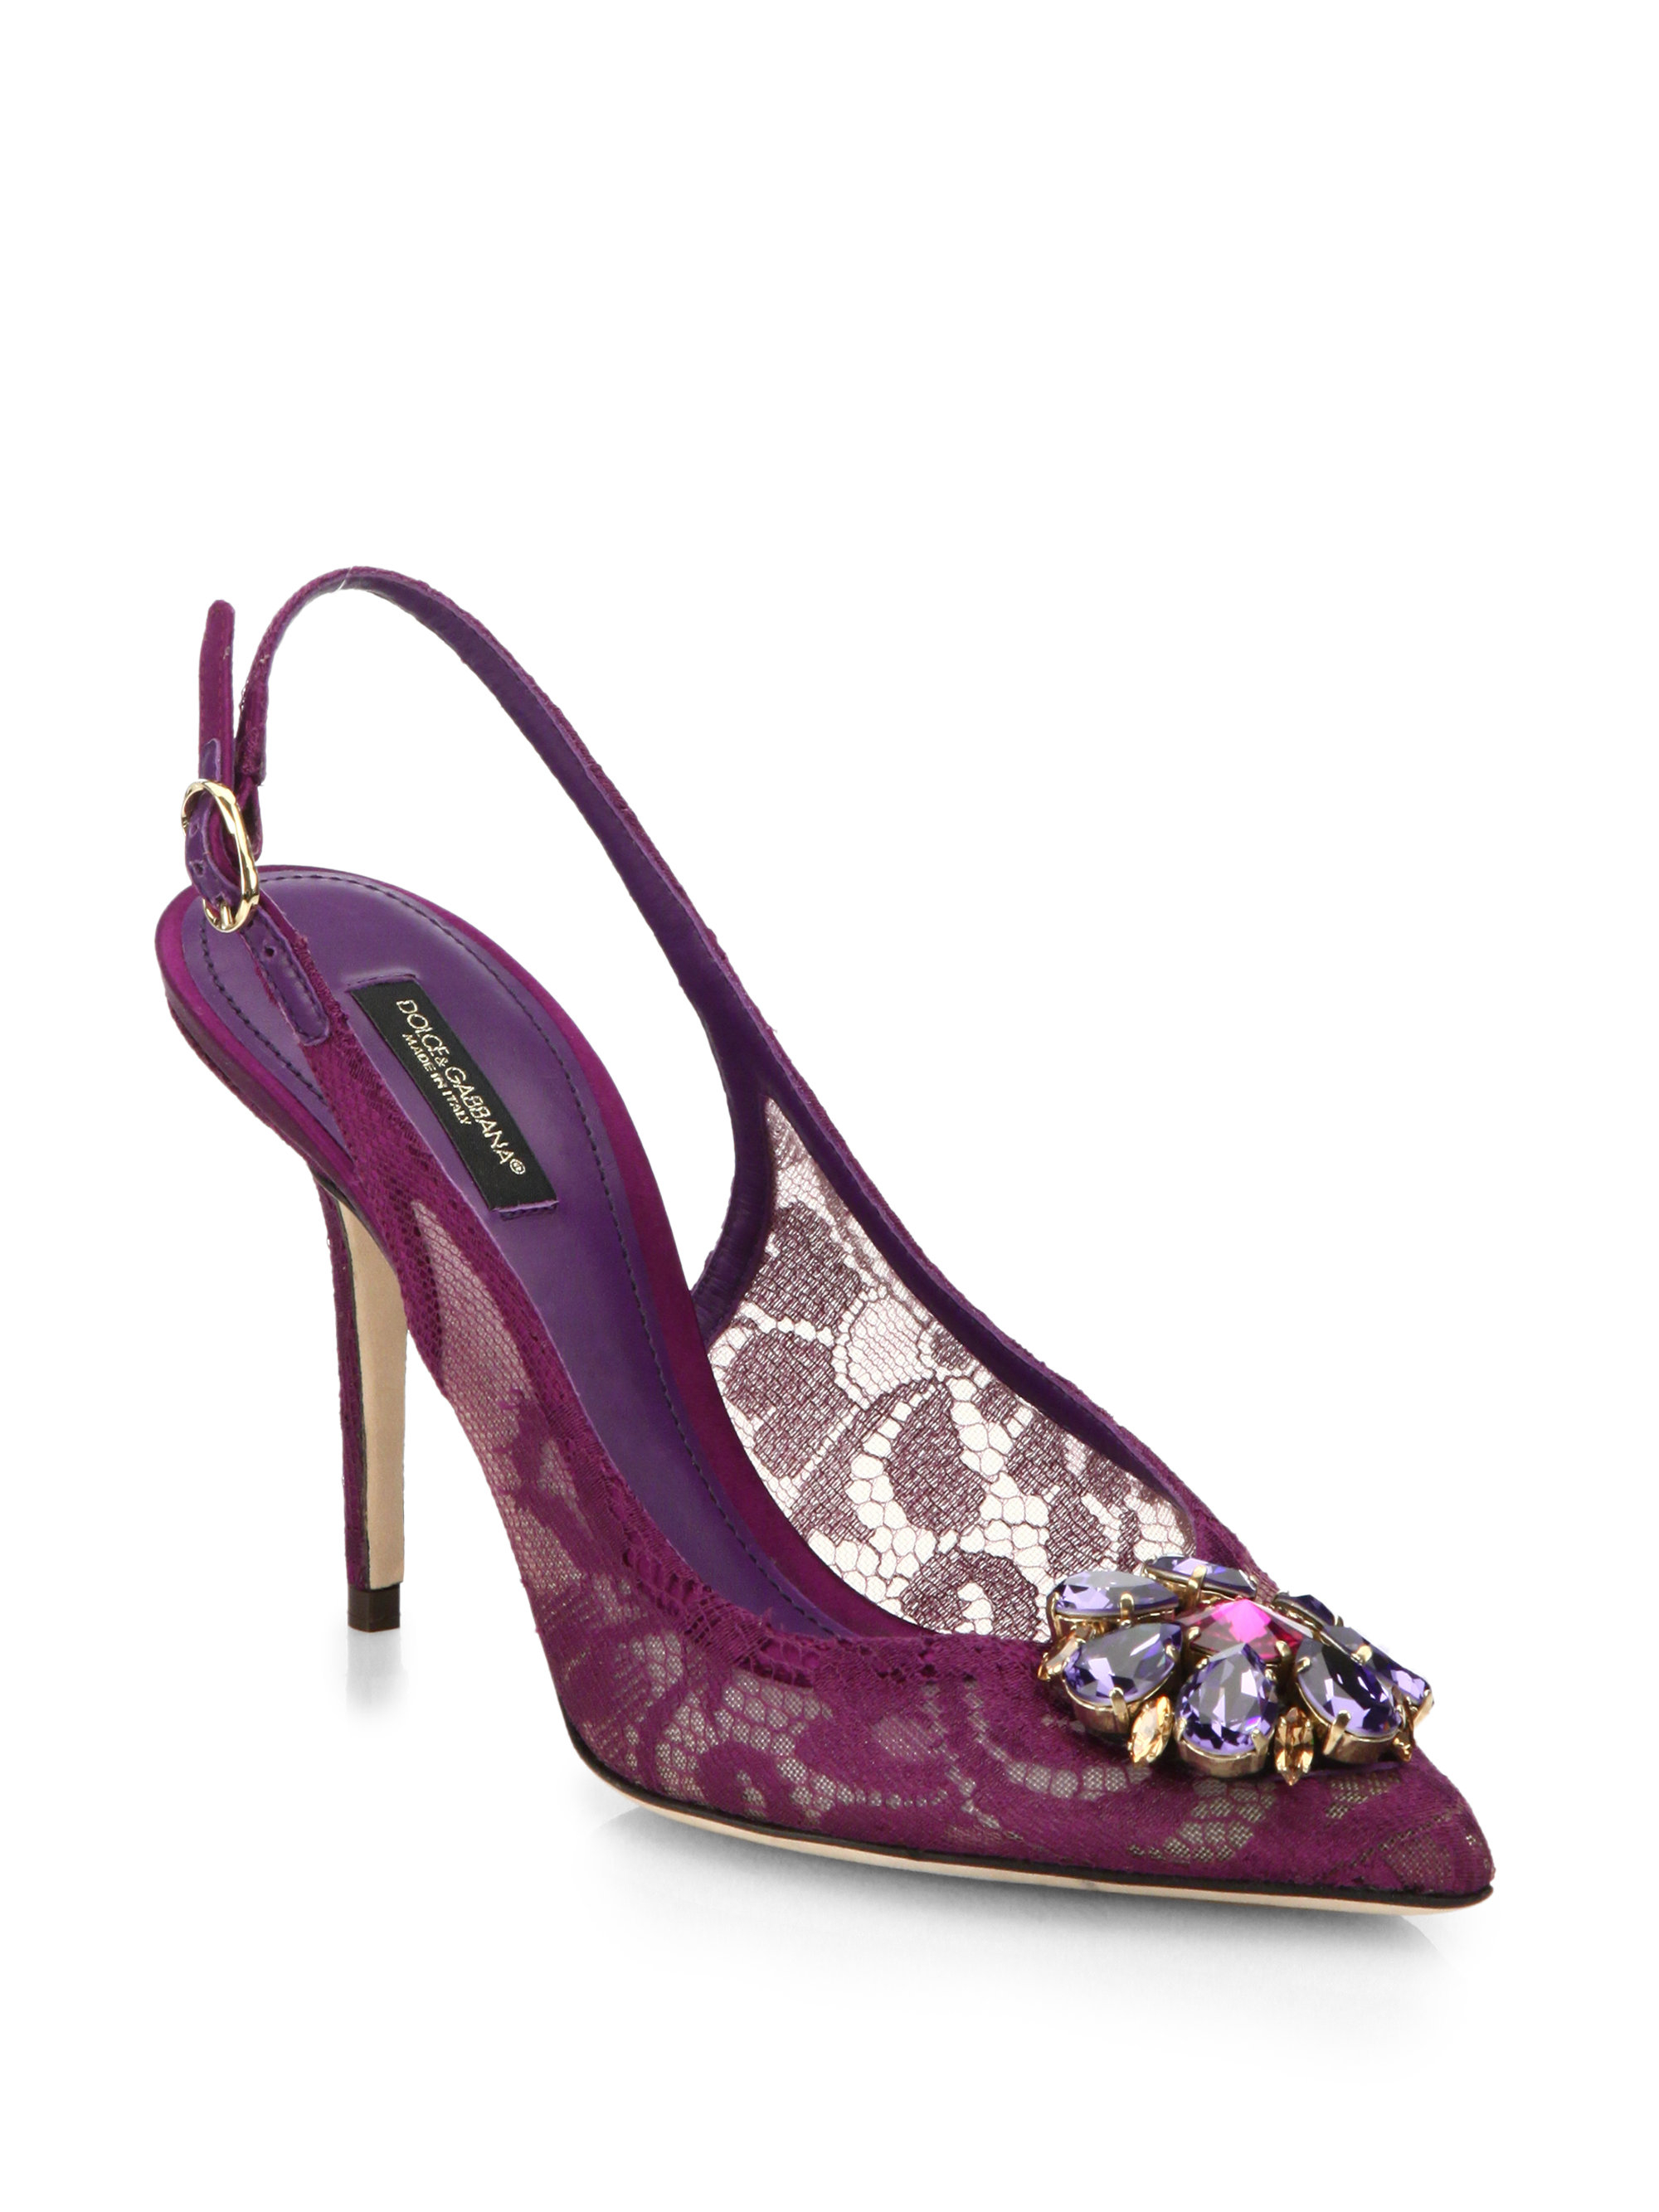 Lyst - Dolce & gabbana Embellished Lace Slingback Pumps in Purple